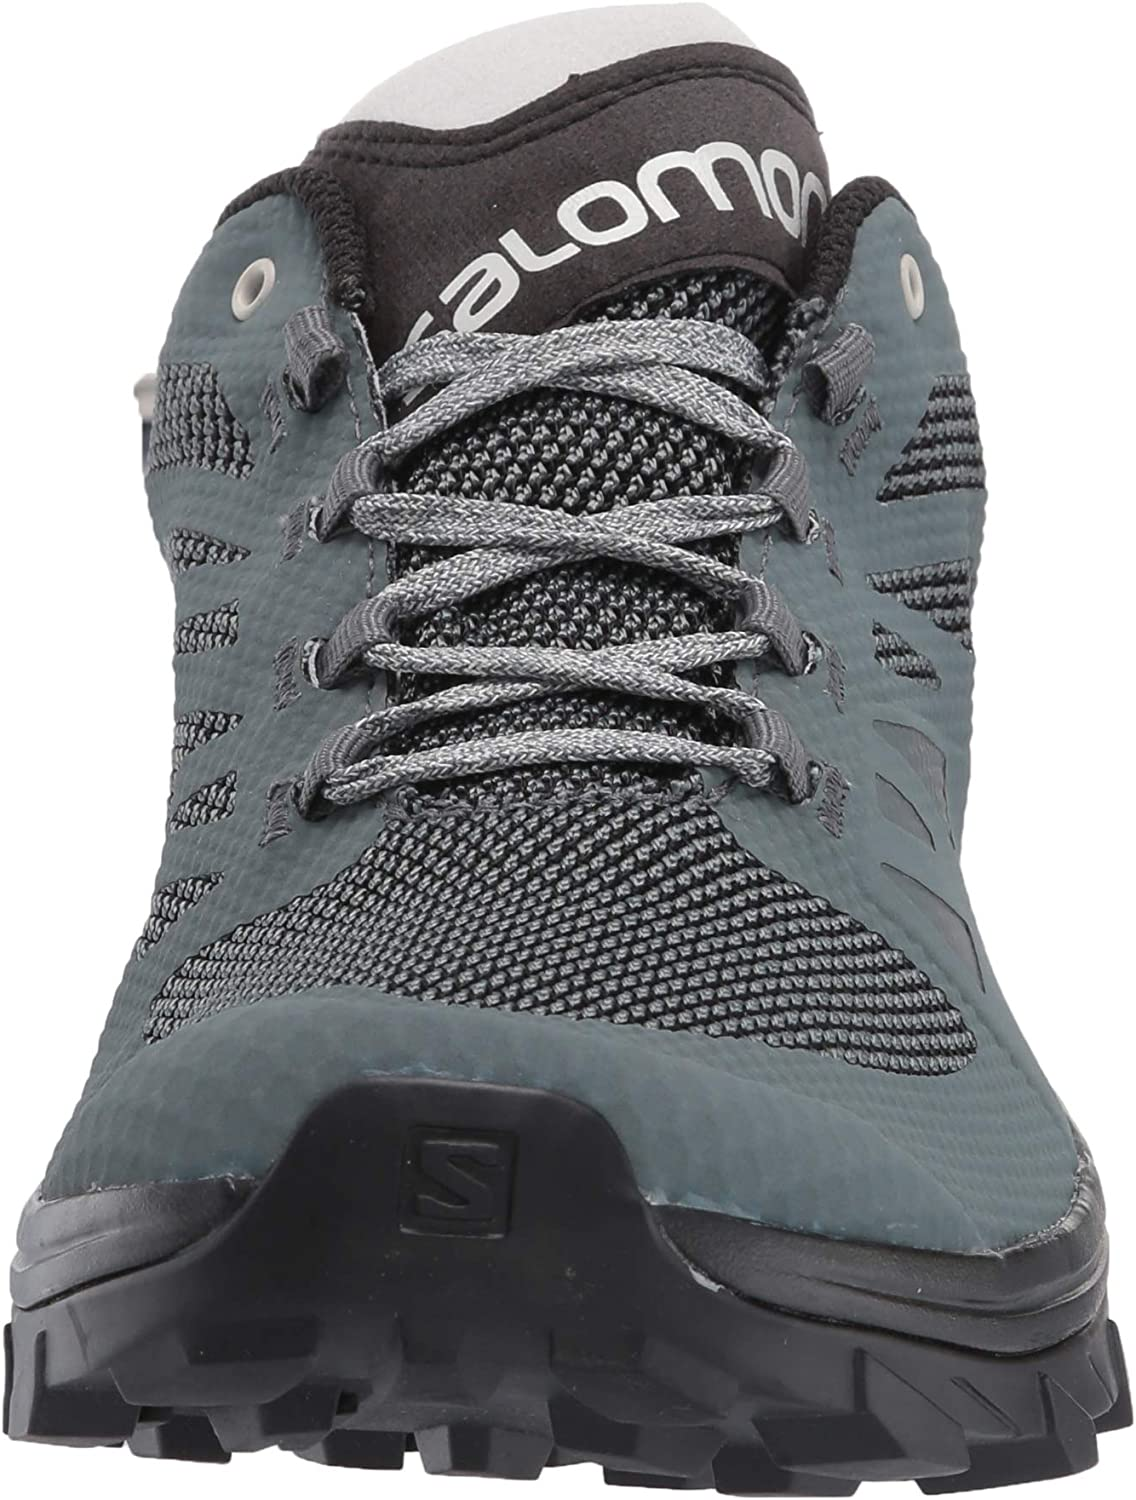 Salomon Womens Hiking Shoe